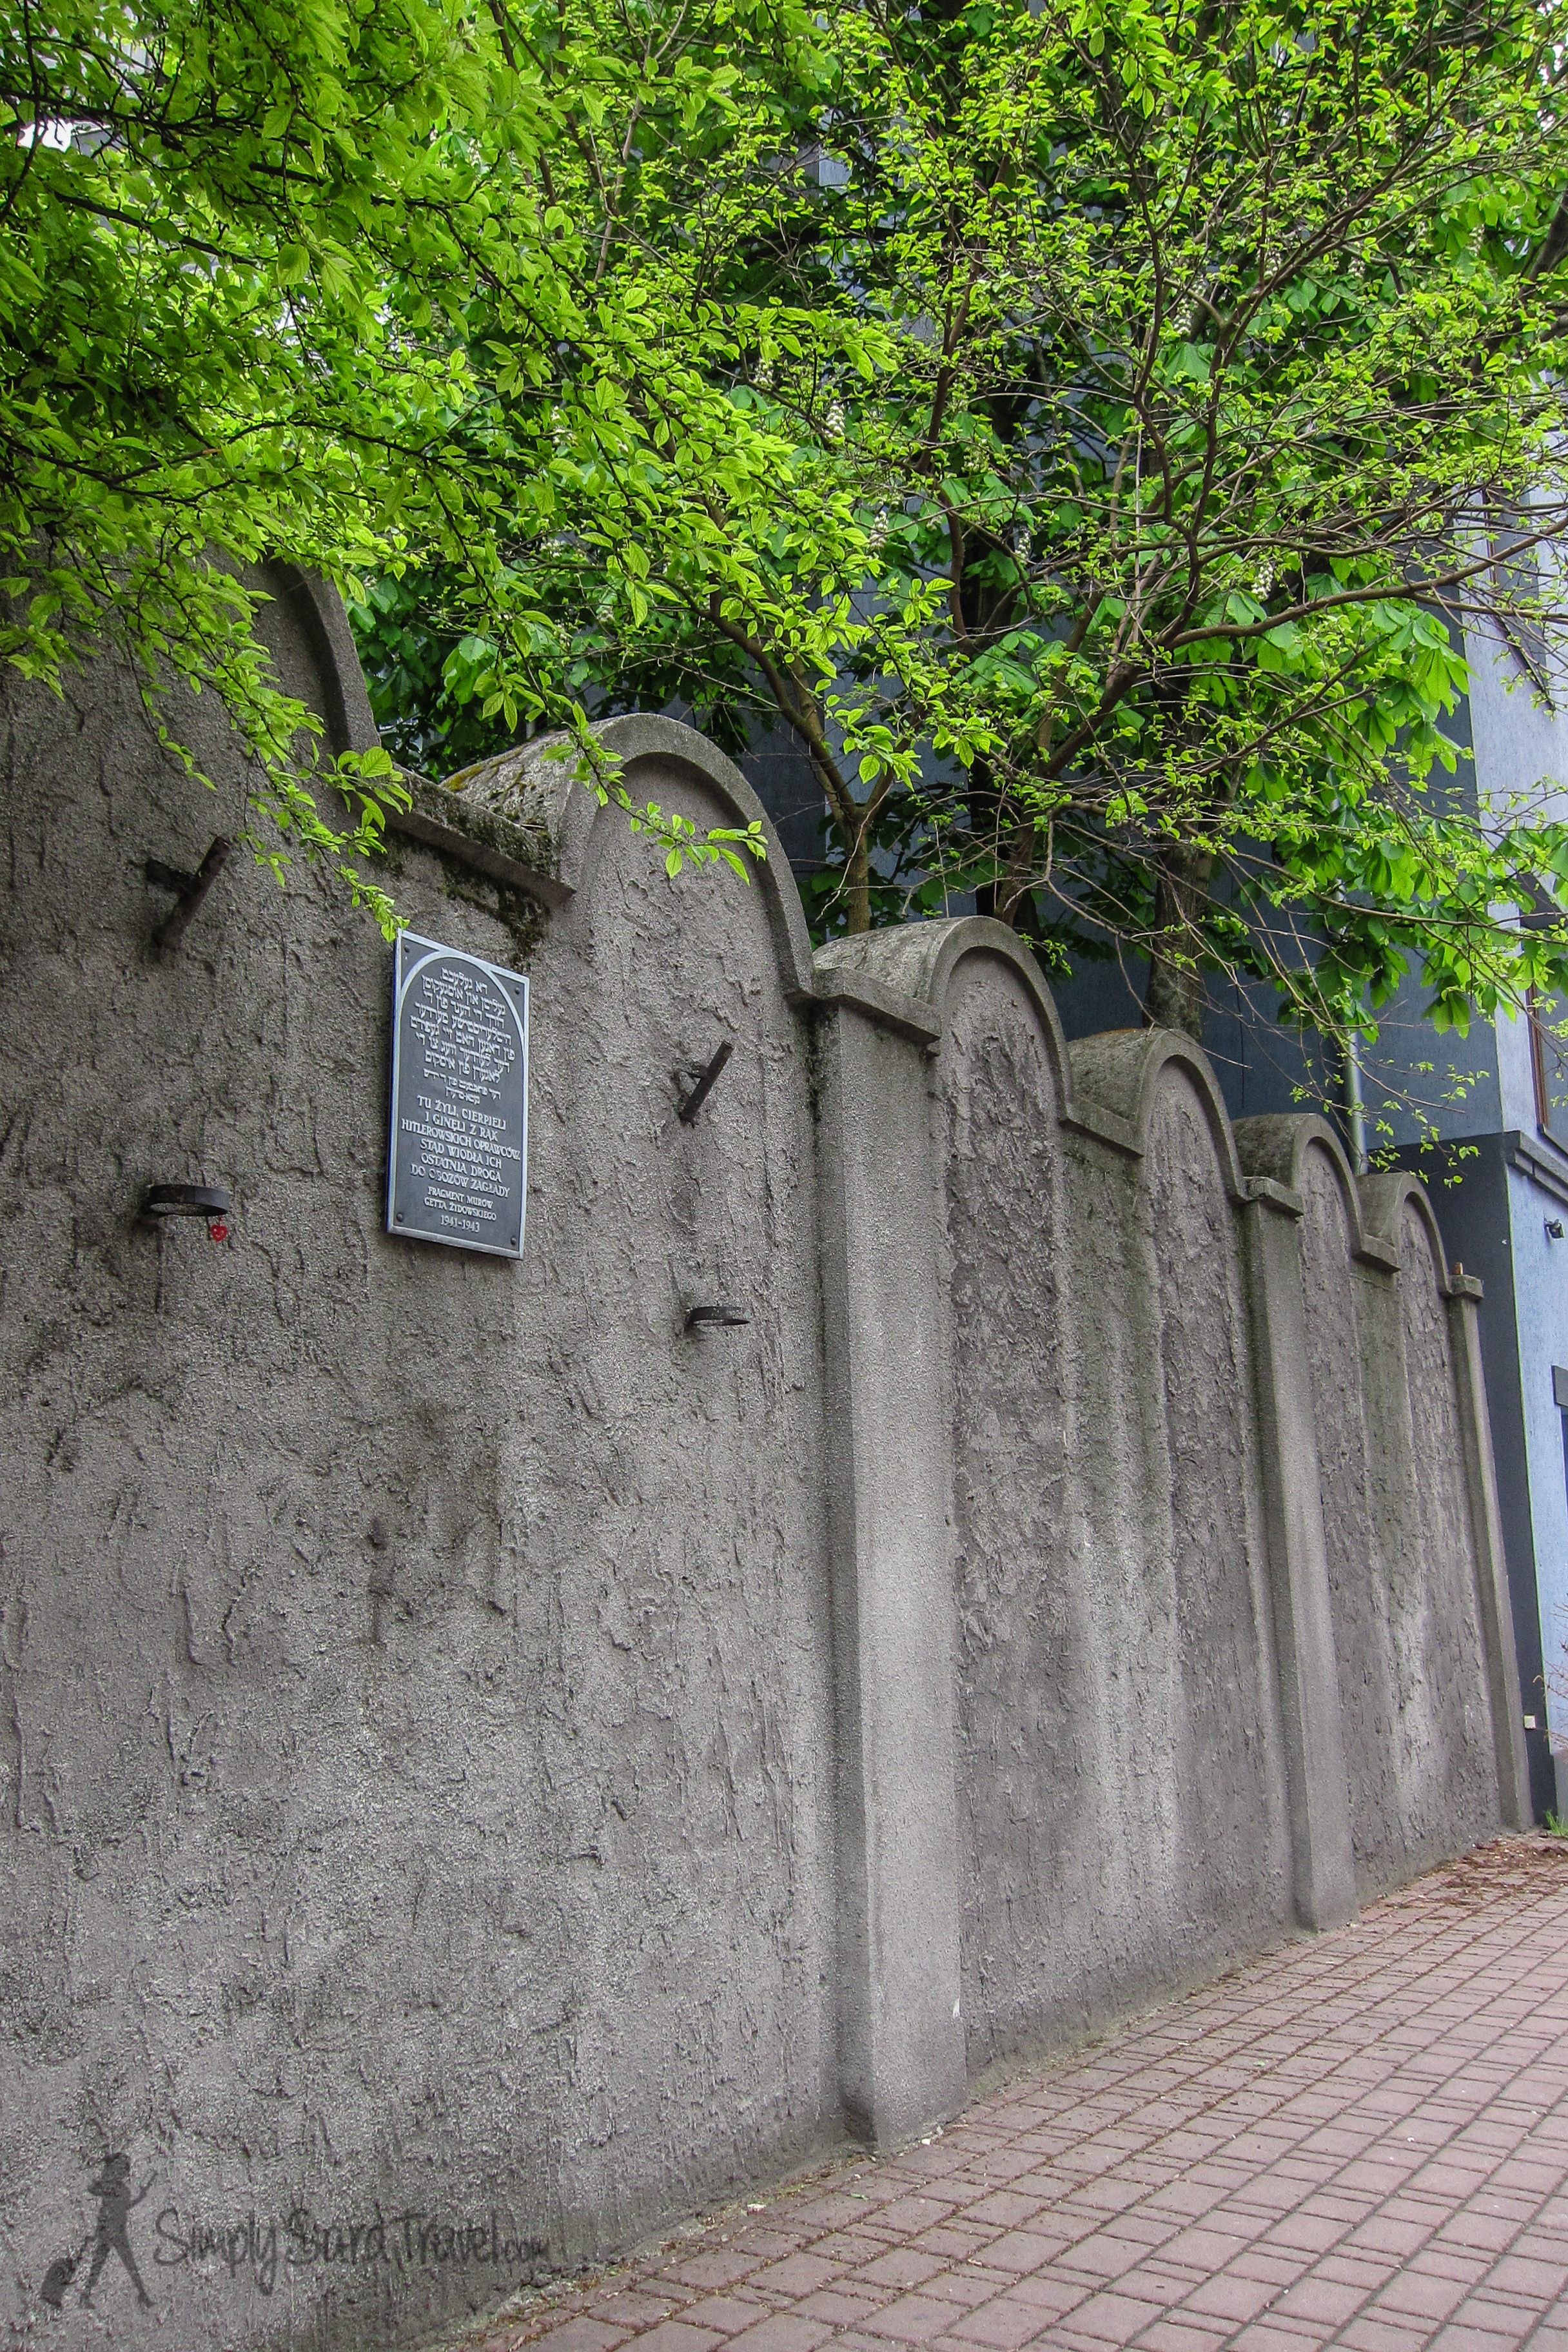 Notice how the wall looks like a line of tombstones.